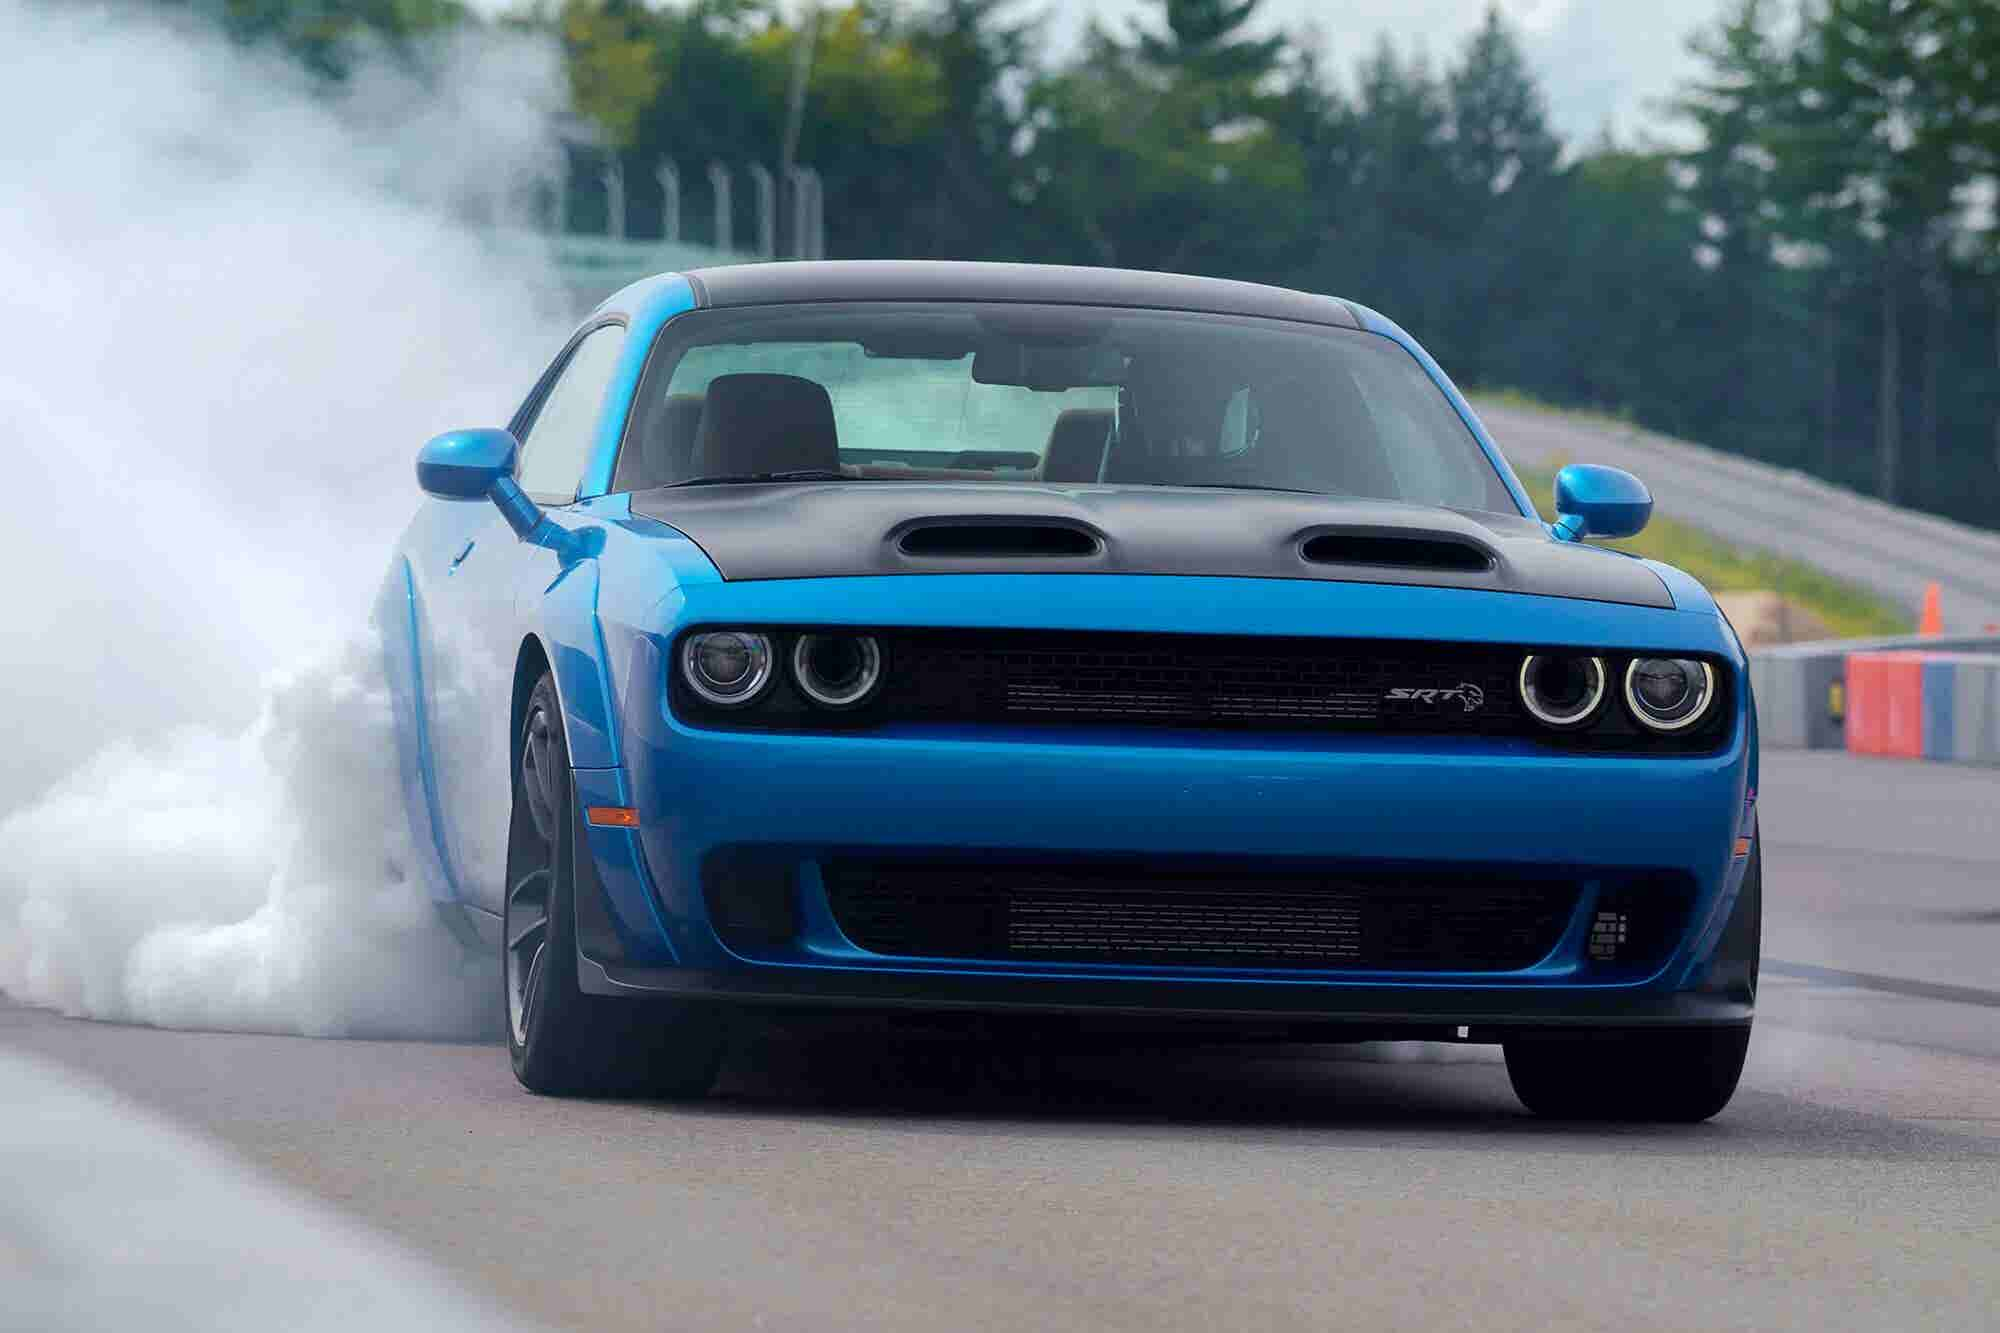 The Next Dodge Challenger Muscle Car to be Electrified